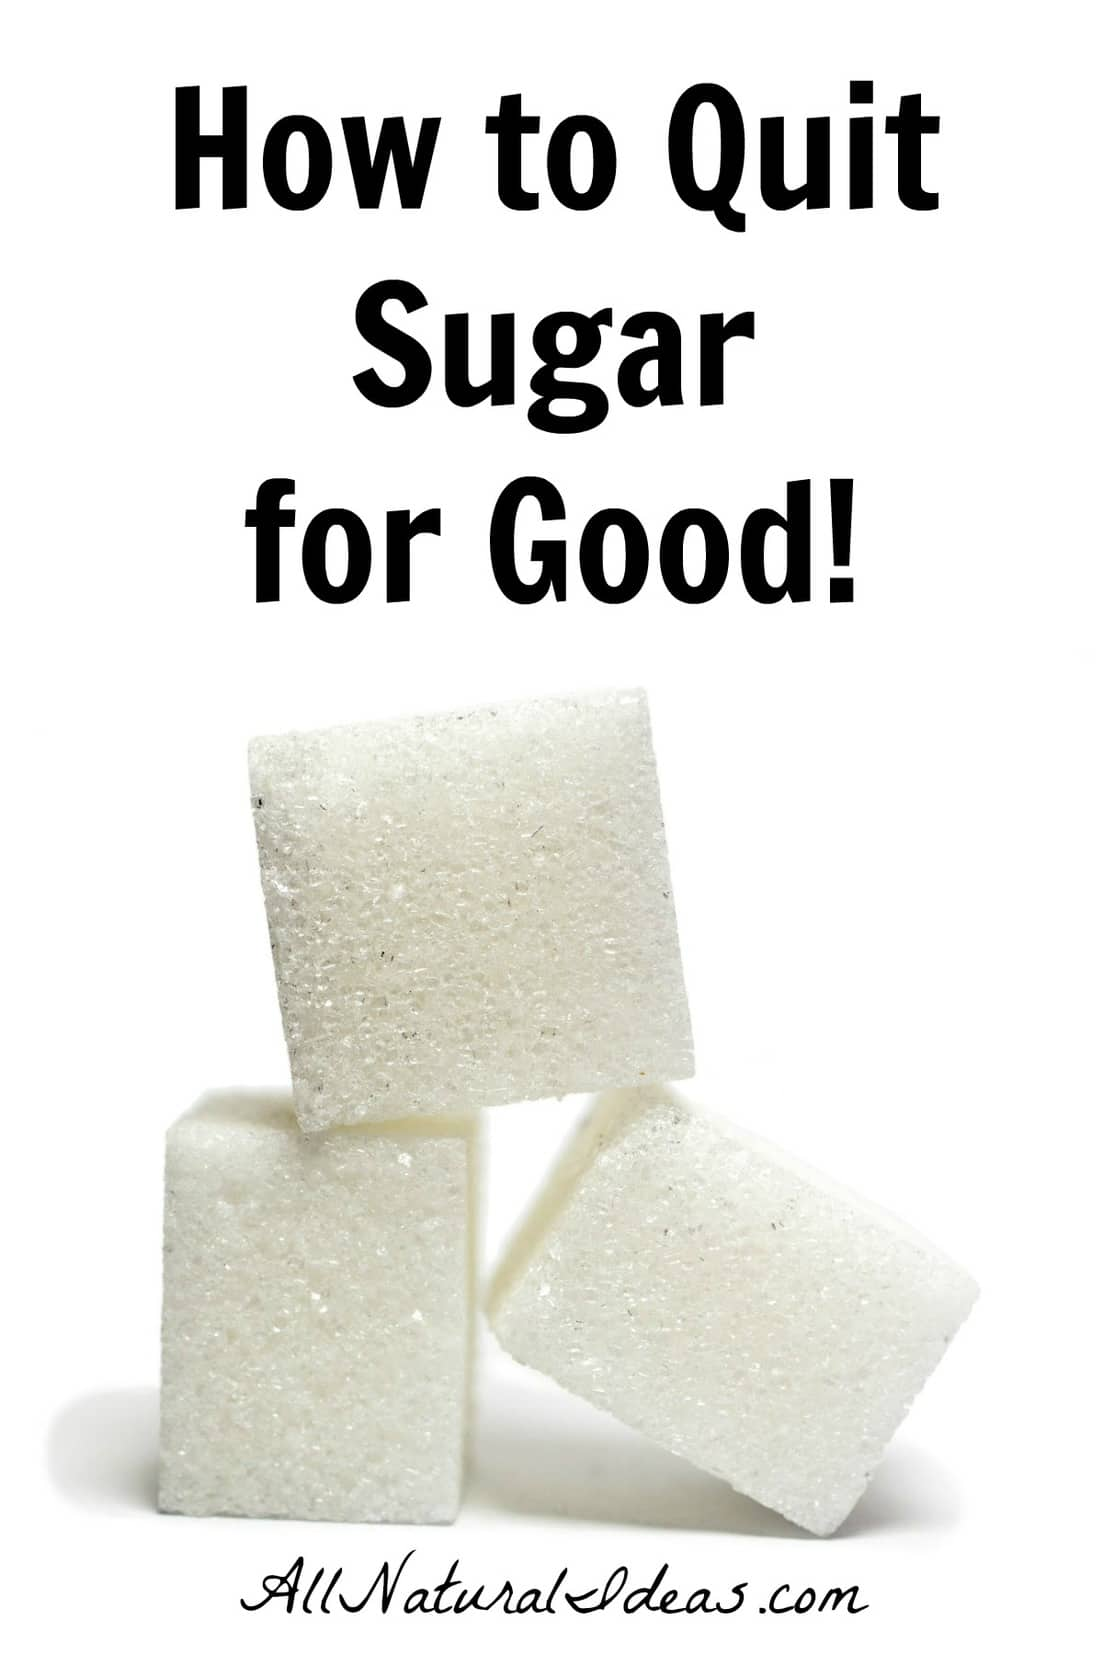 Many of the chronic health problems today originate from sugar. Learn how to quit sugar addiction and detox to lower your risk of chronic diseases. | allnaturalideas.com